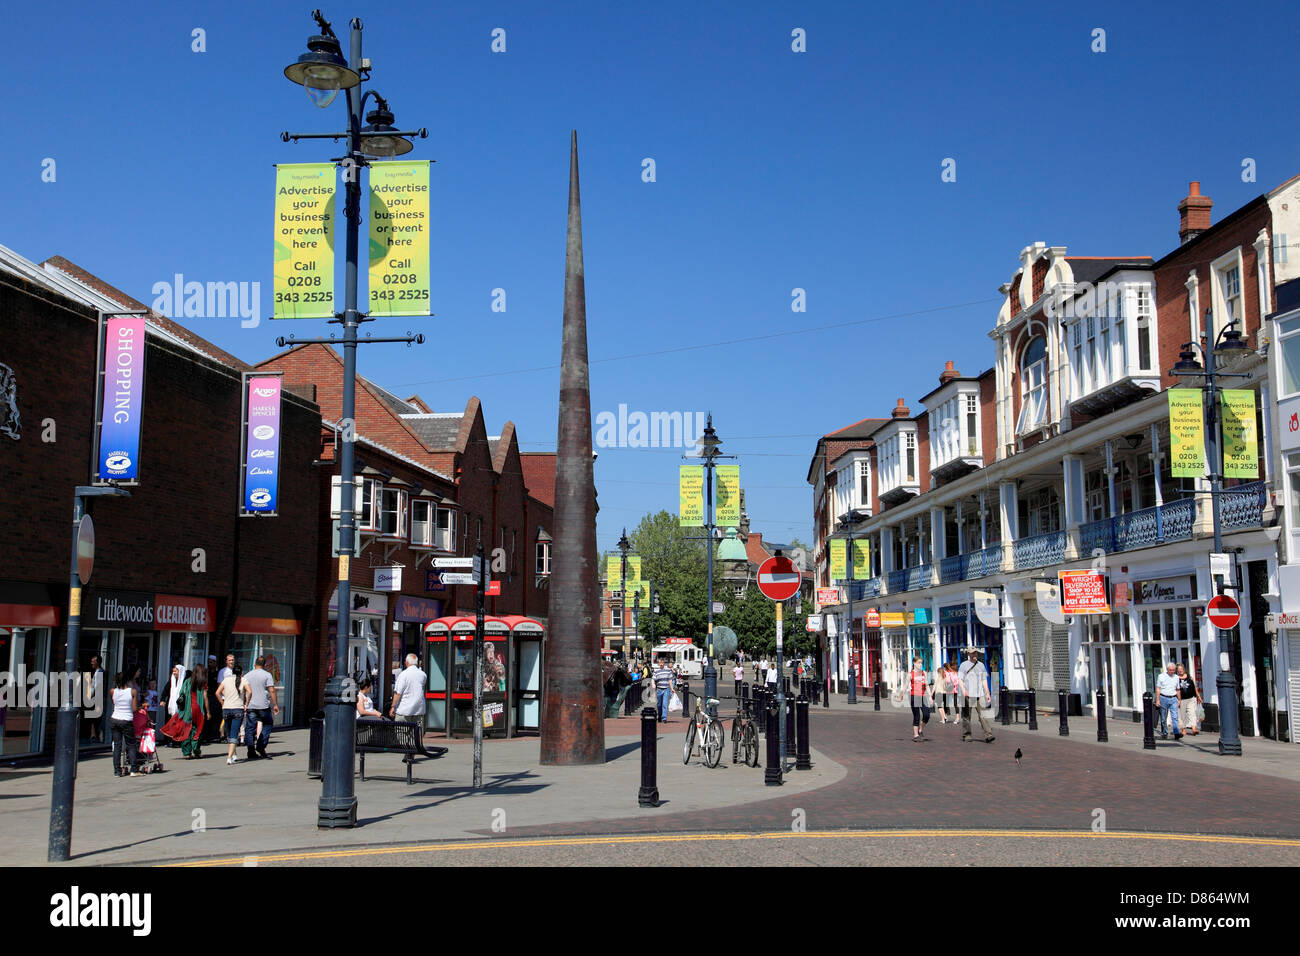 Bradford Street, Walsall, a pedestrianised area with the Saddlers Shopping Centre on the left - Stock Image